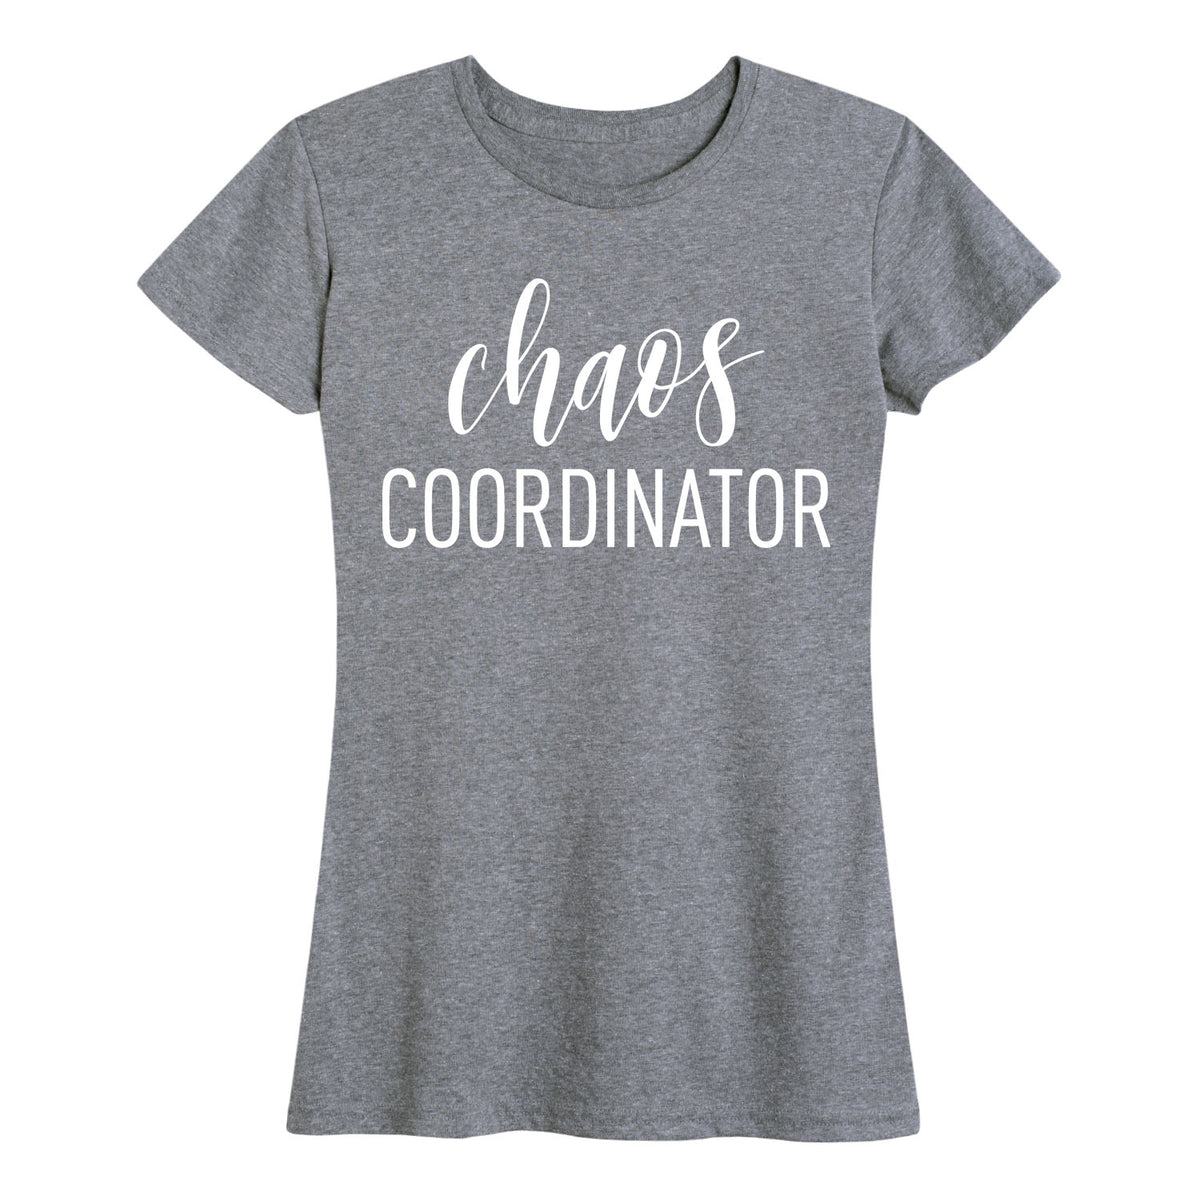 Chaos Coordinator - Women's Short Sleeve T-Shirt